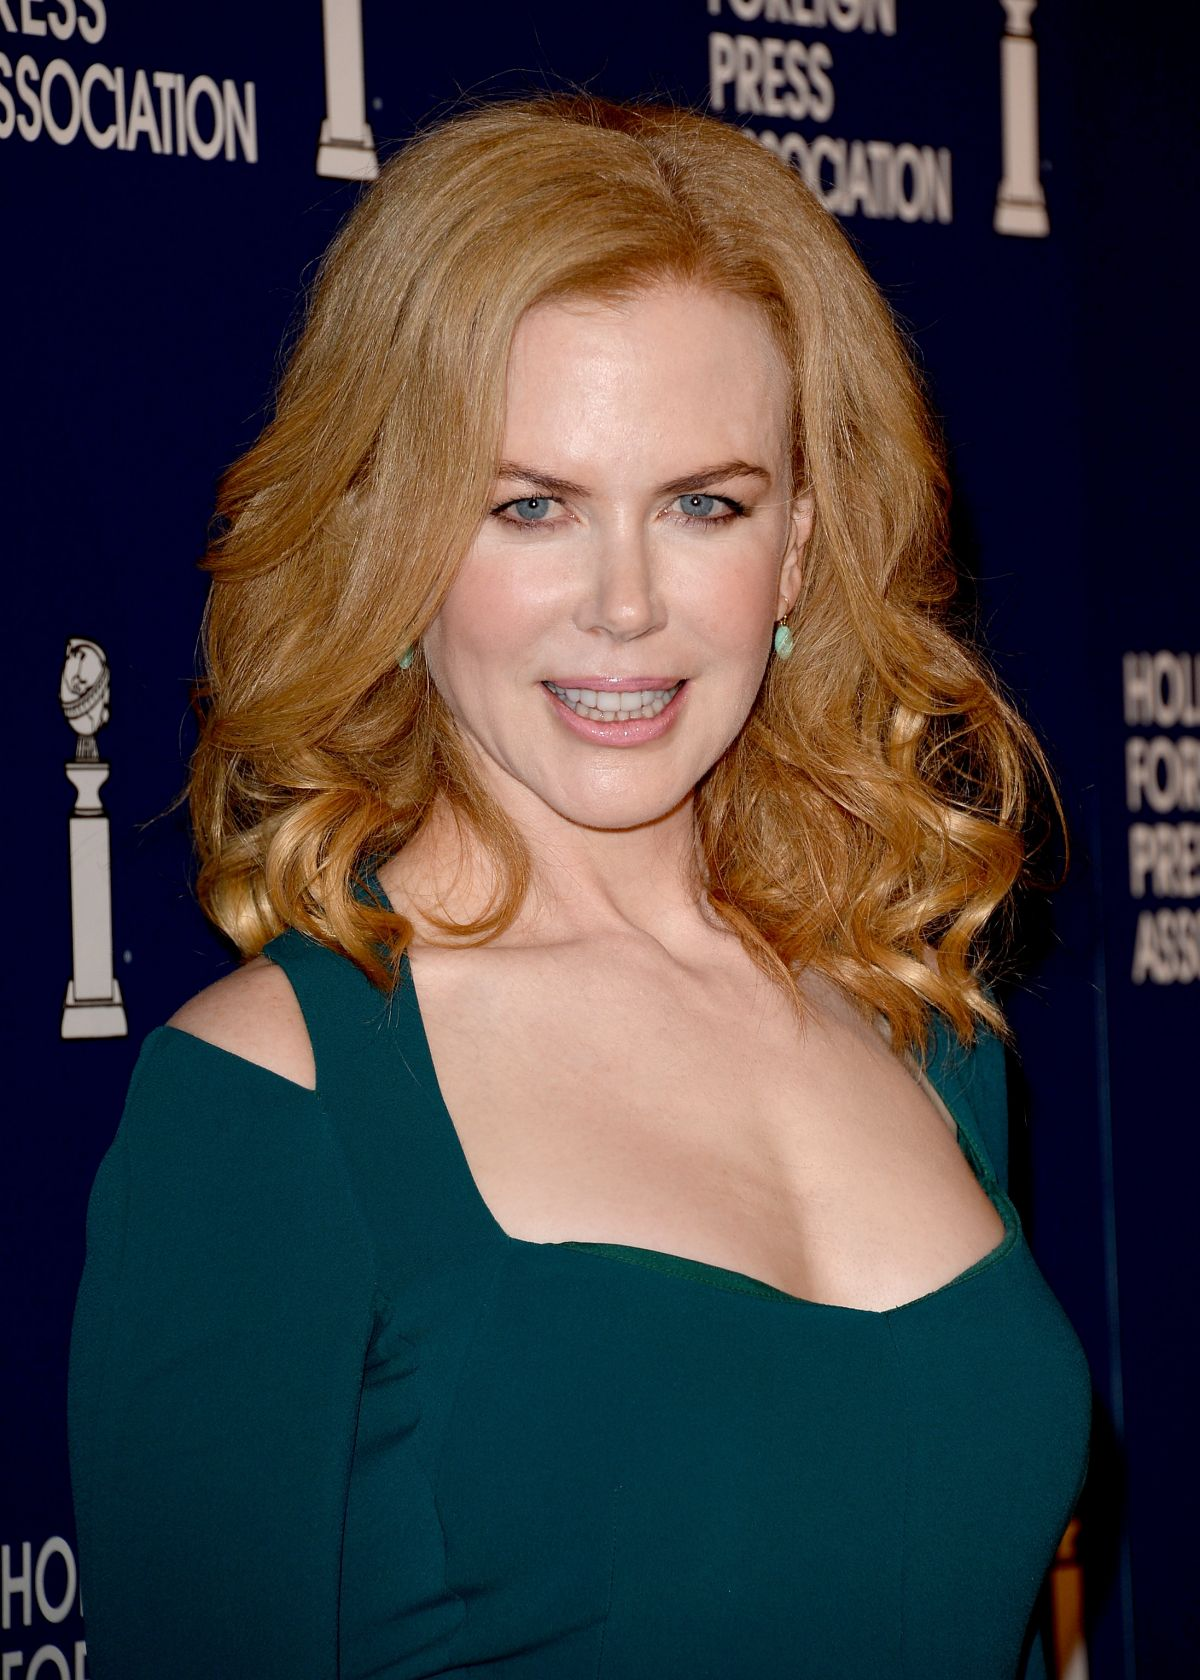 Nicole Kidman At The Hollywood Foreign Press Association